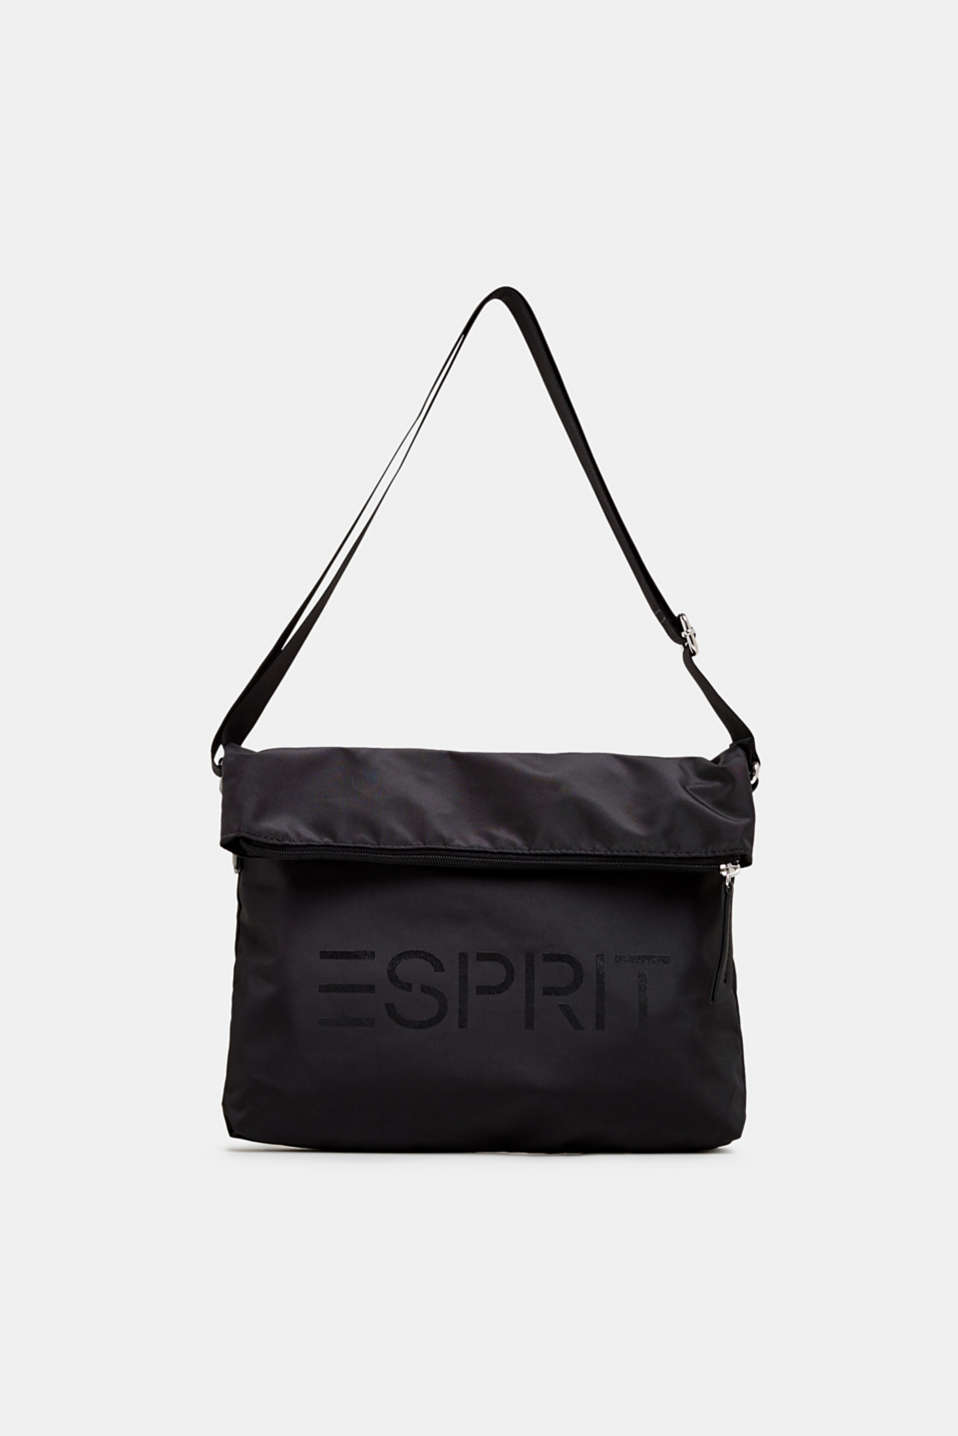 Esprit - Nylon bag with a logo and adjustable clasp